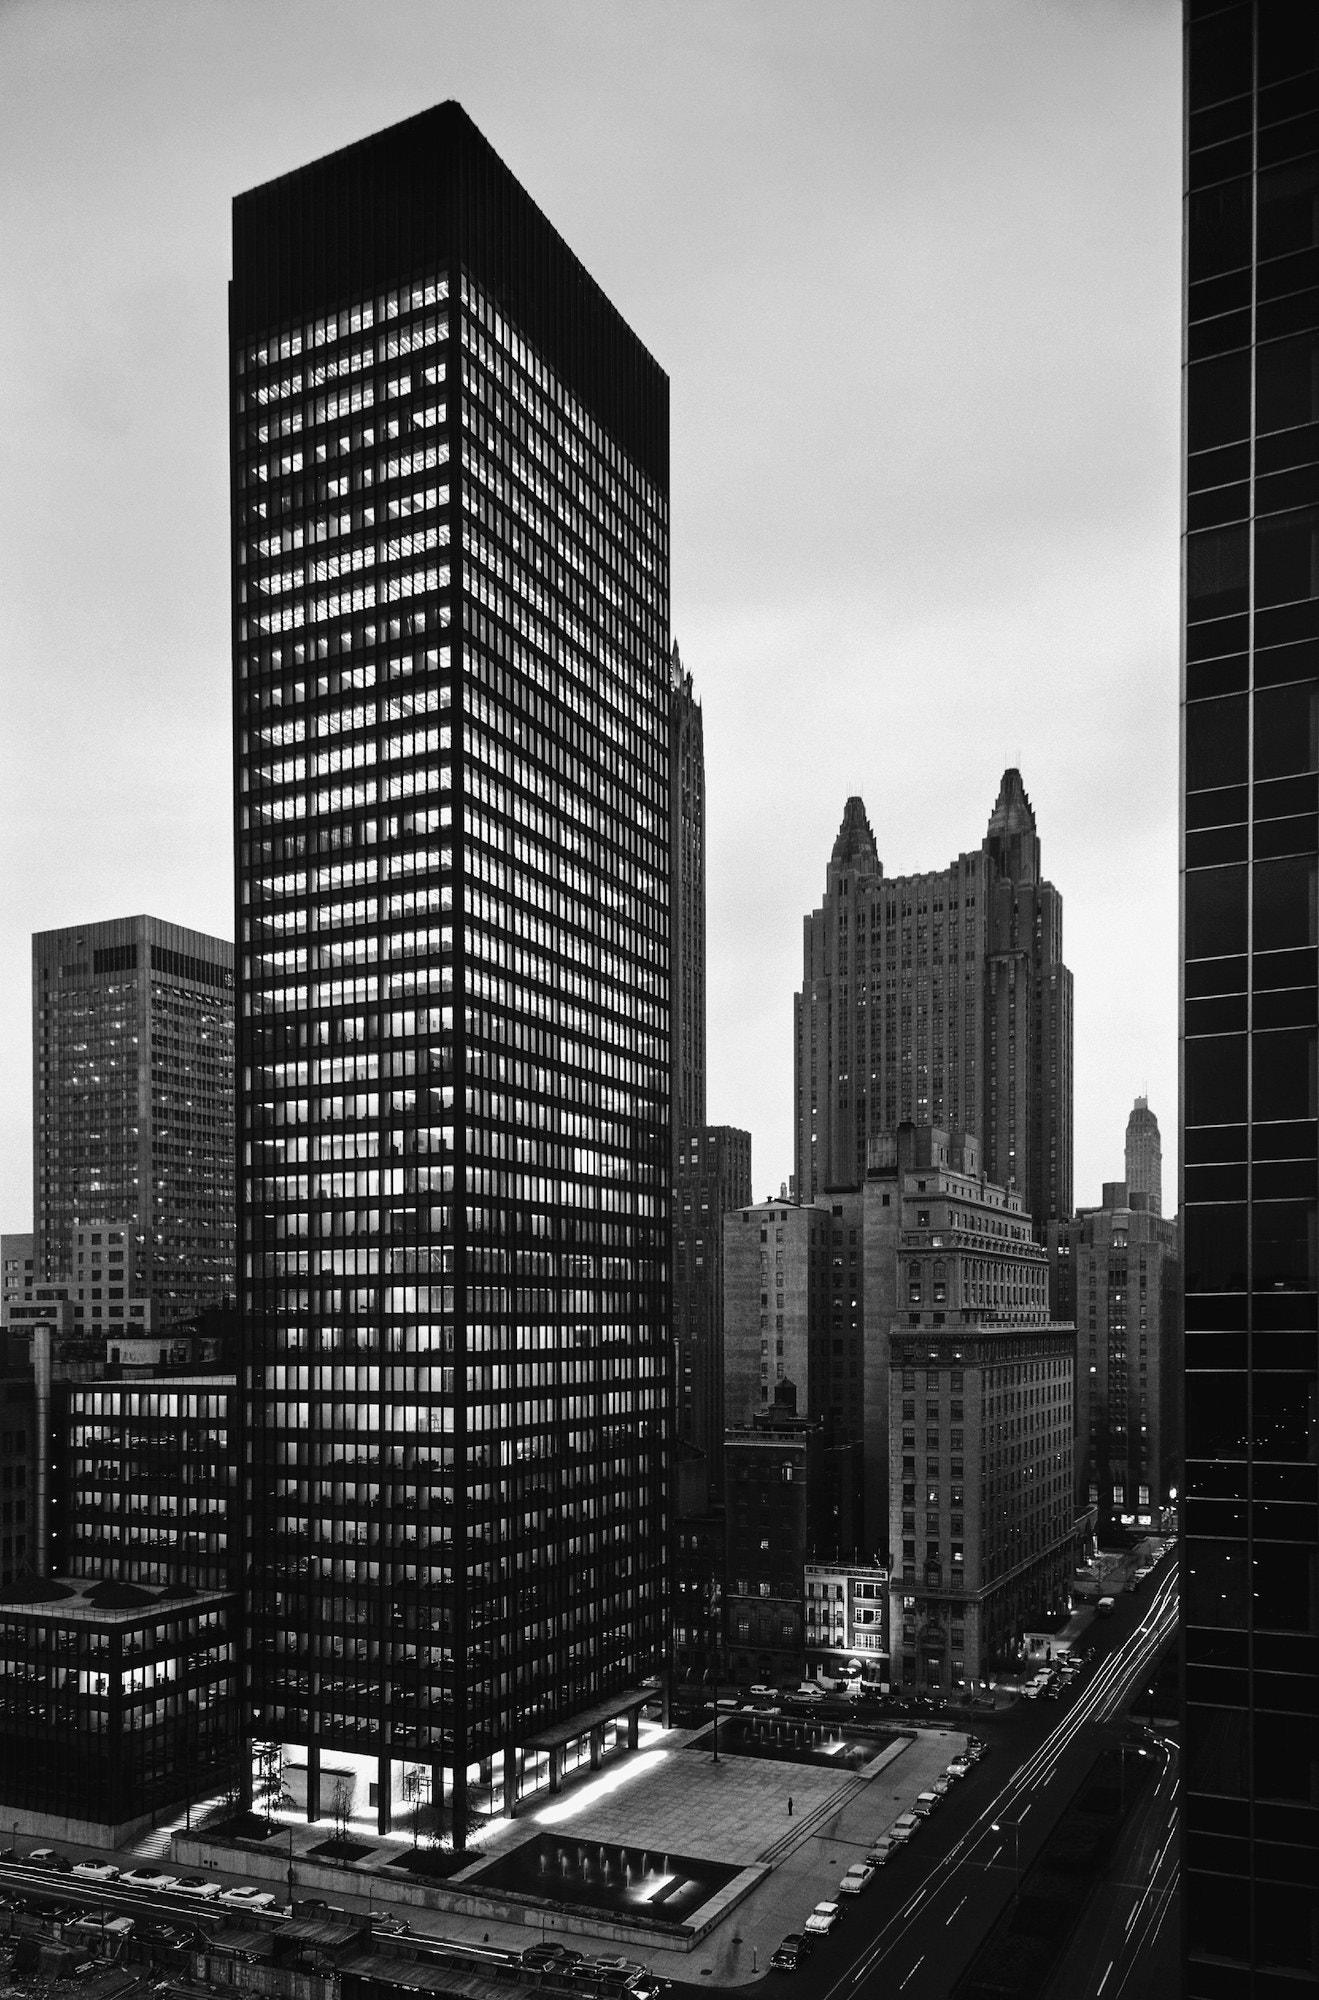 The photographer captured Ludwig Mies van der Rohe's iconic Seagram Building in New York City in 1958, the year it was completed.